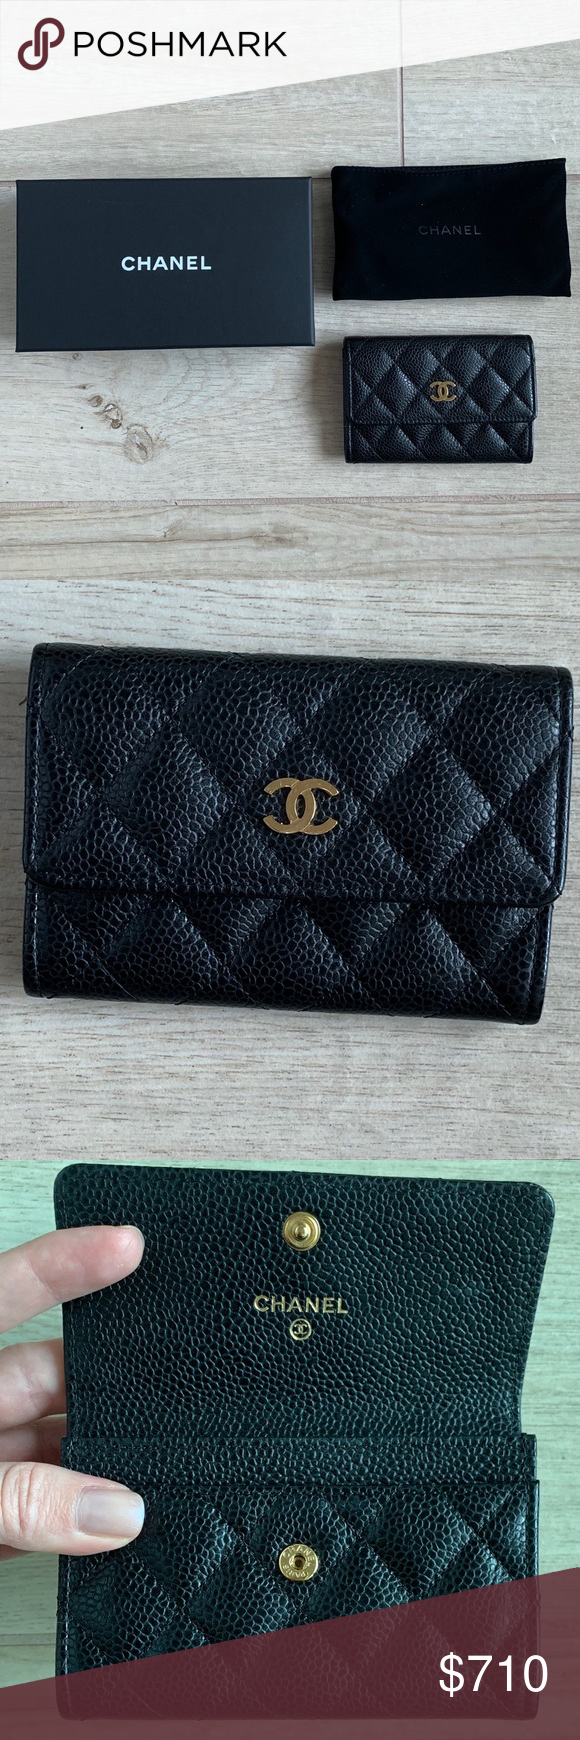 e6d78338471a CHANEL credit card holder (with dust bag and box) Credit card holder Pre  owned Luxury item Chanel box and authenticity card (with receipt!) included  ...